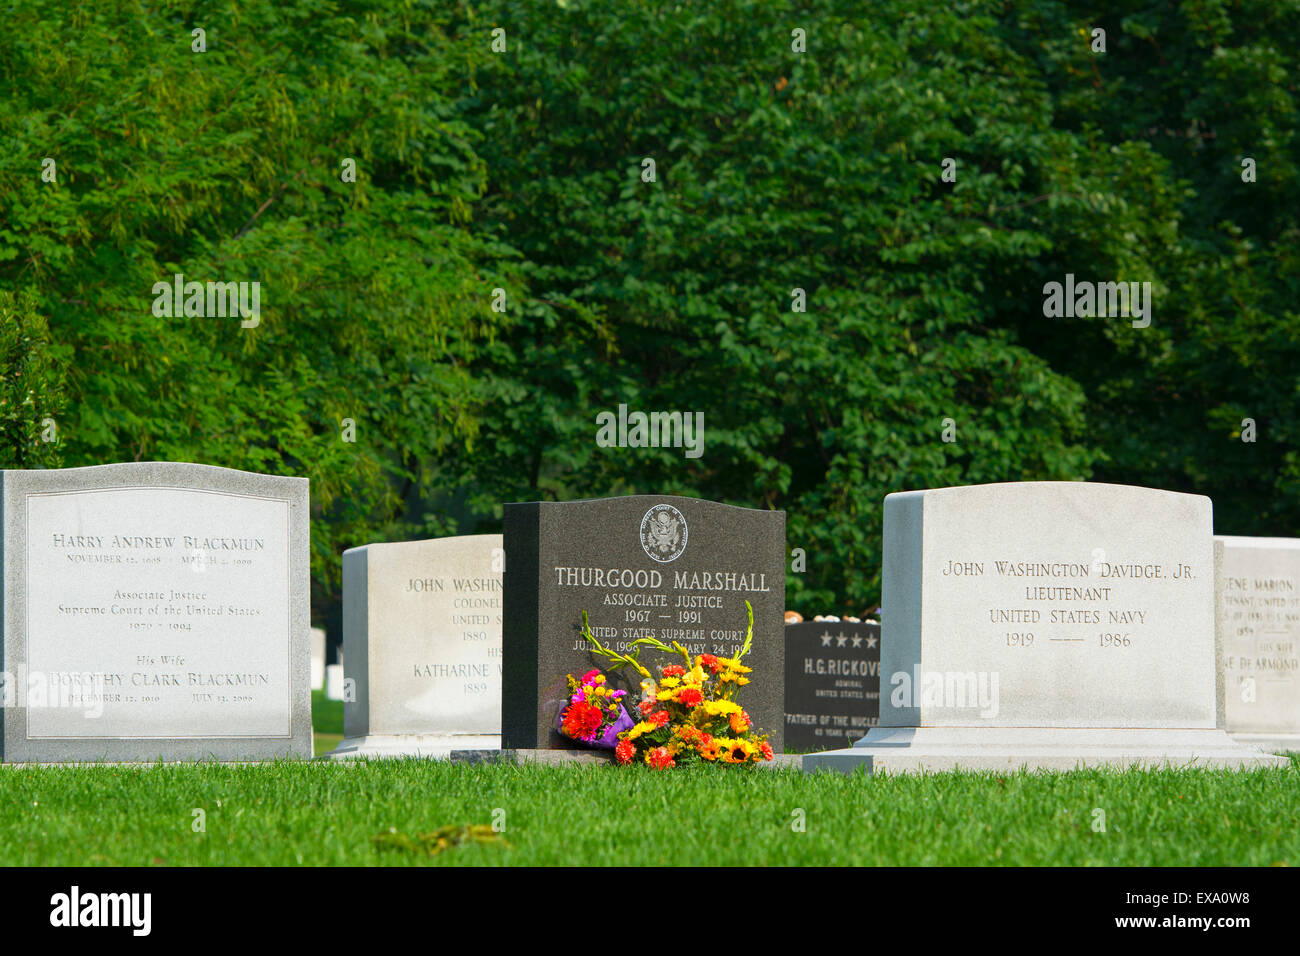 El cementerio de Arlington, lápidas, Thurgood Marshall, Washington D.C. Imagen De Stock